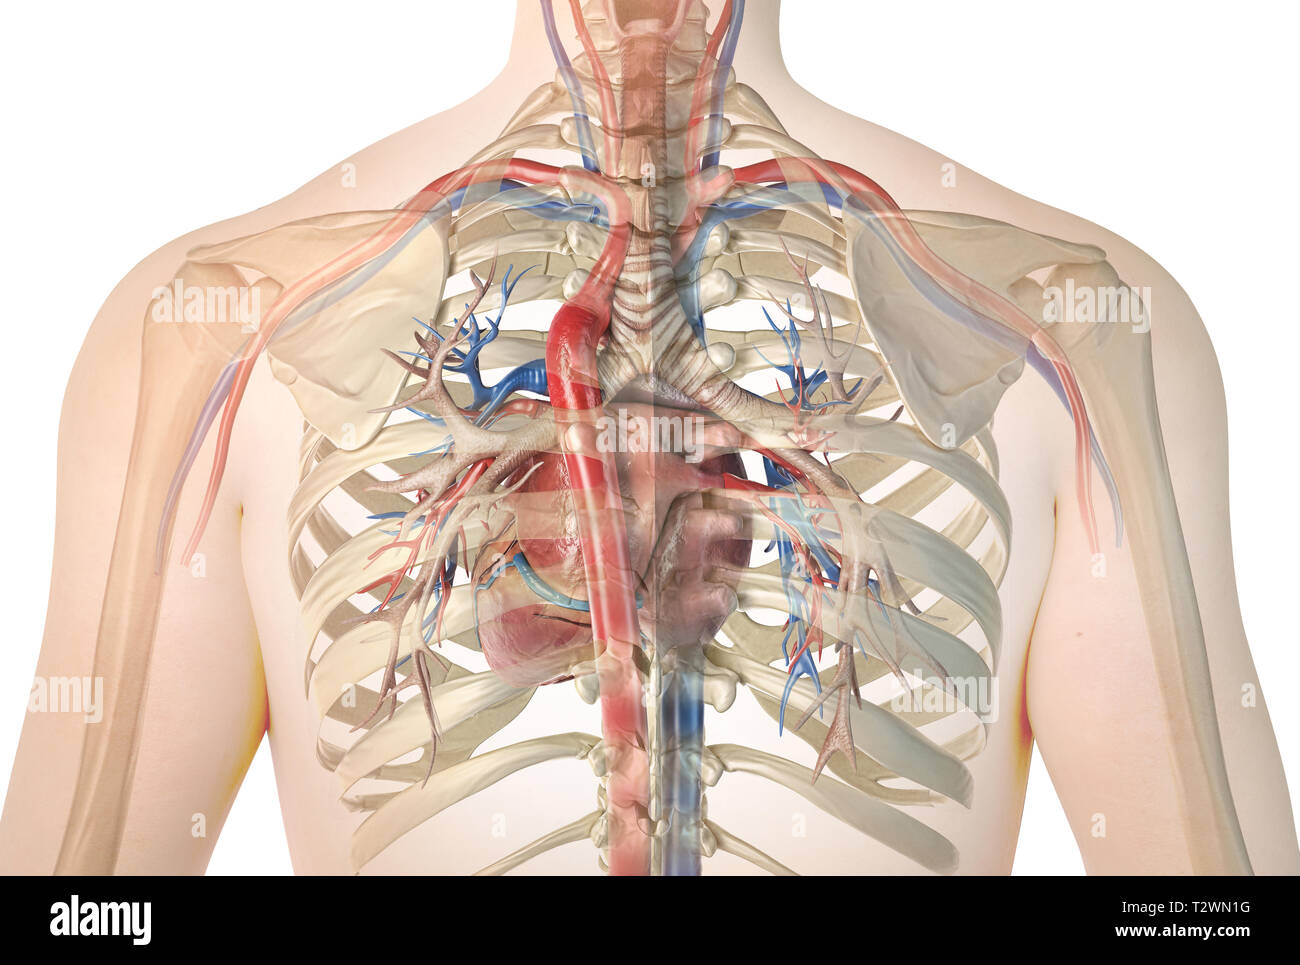 Human heart with vessels and bronchial tree. Back view in ghost effect with rib cage. On white background. Anatomy image. - Stock Image